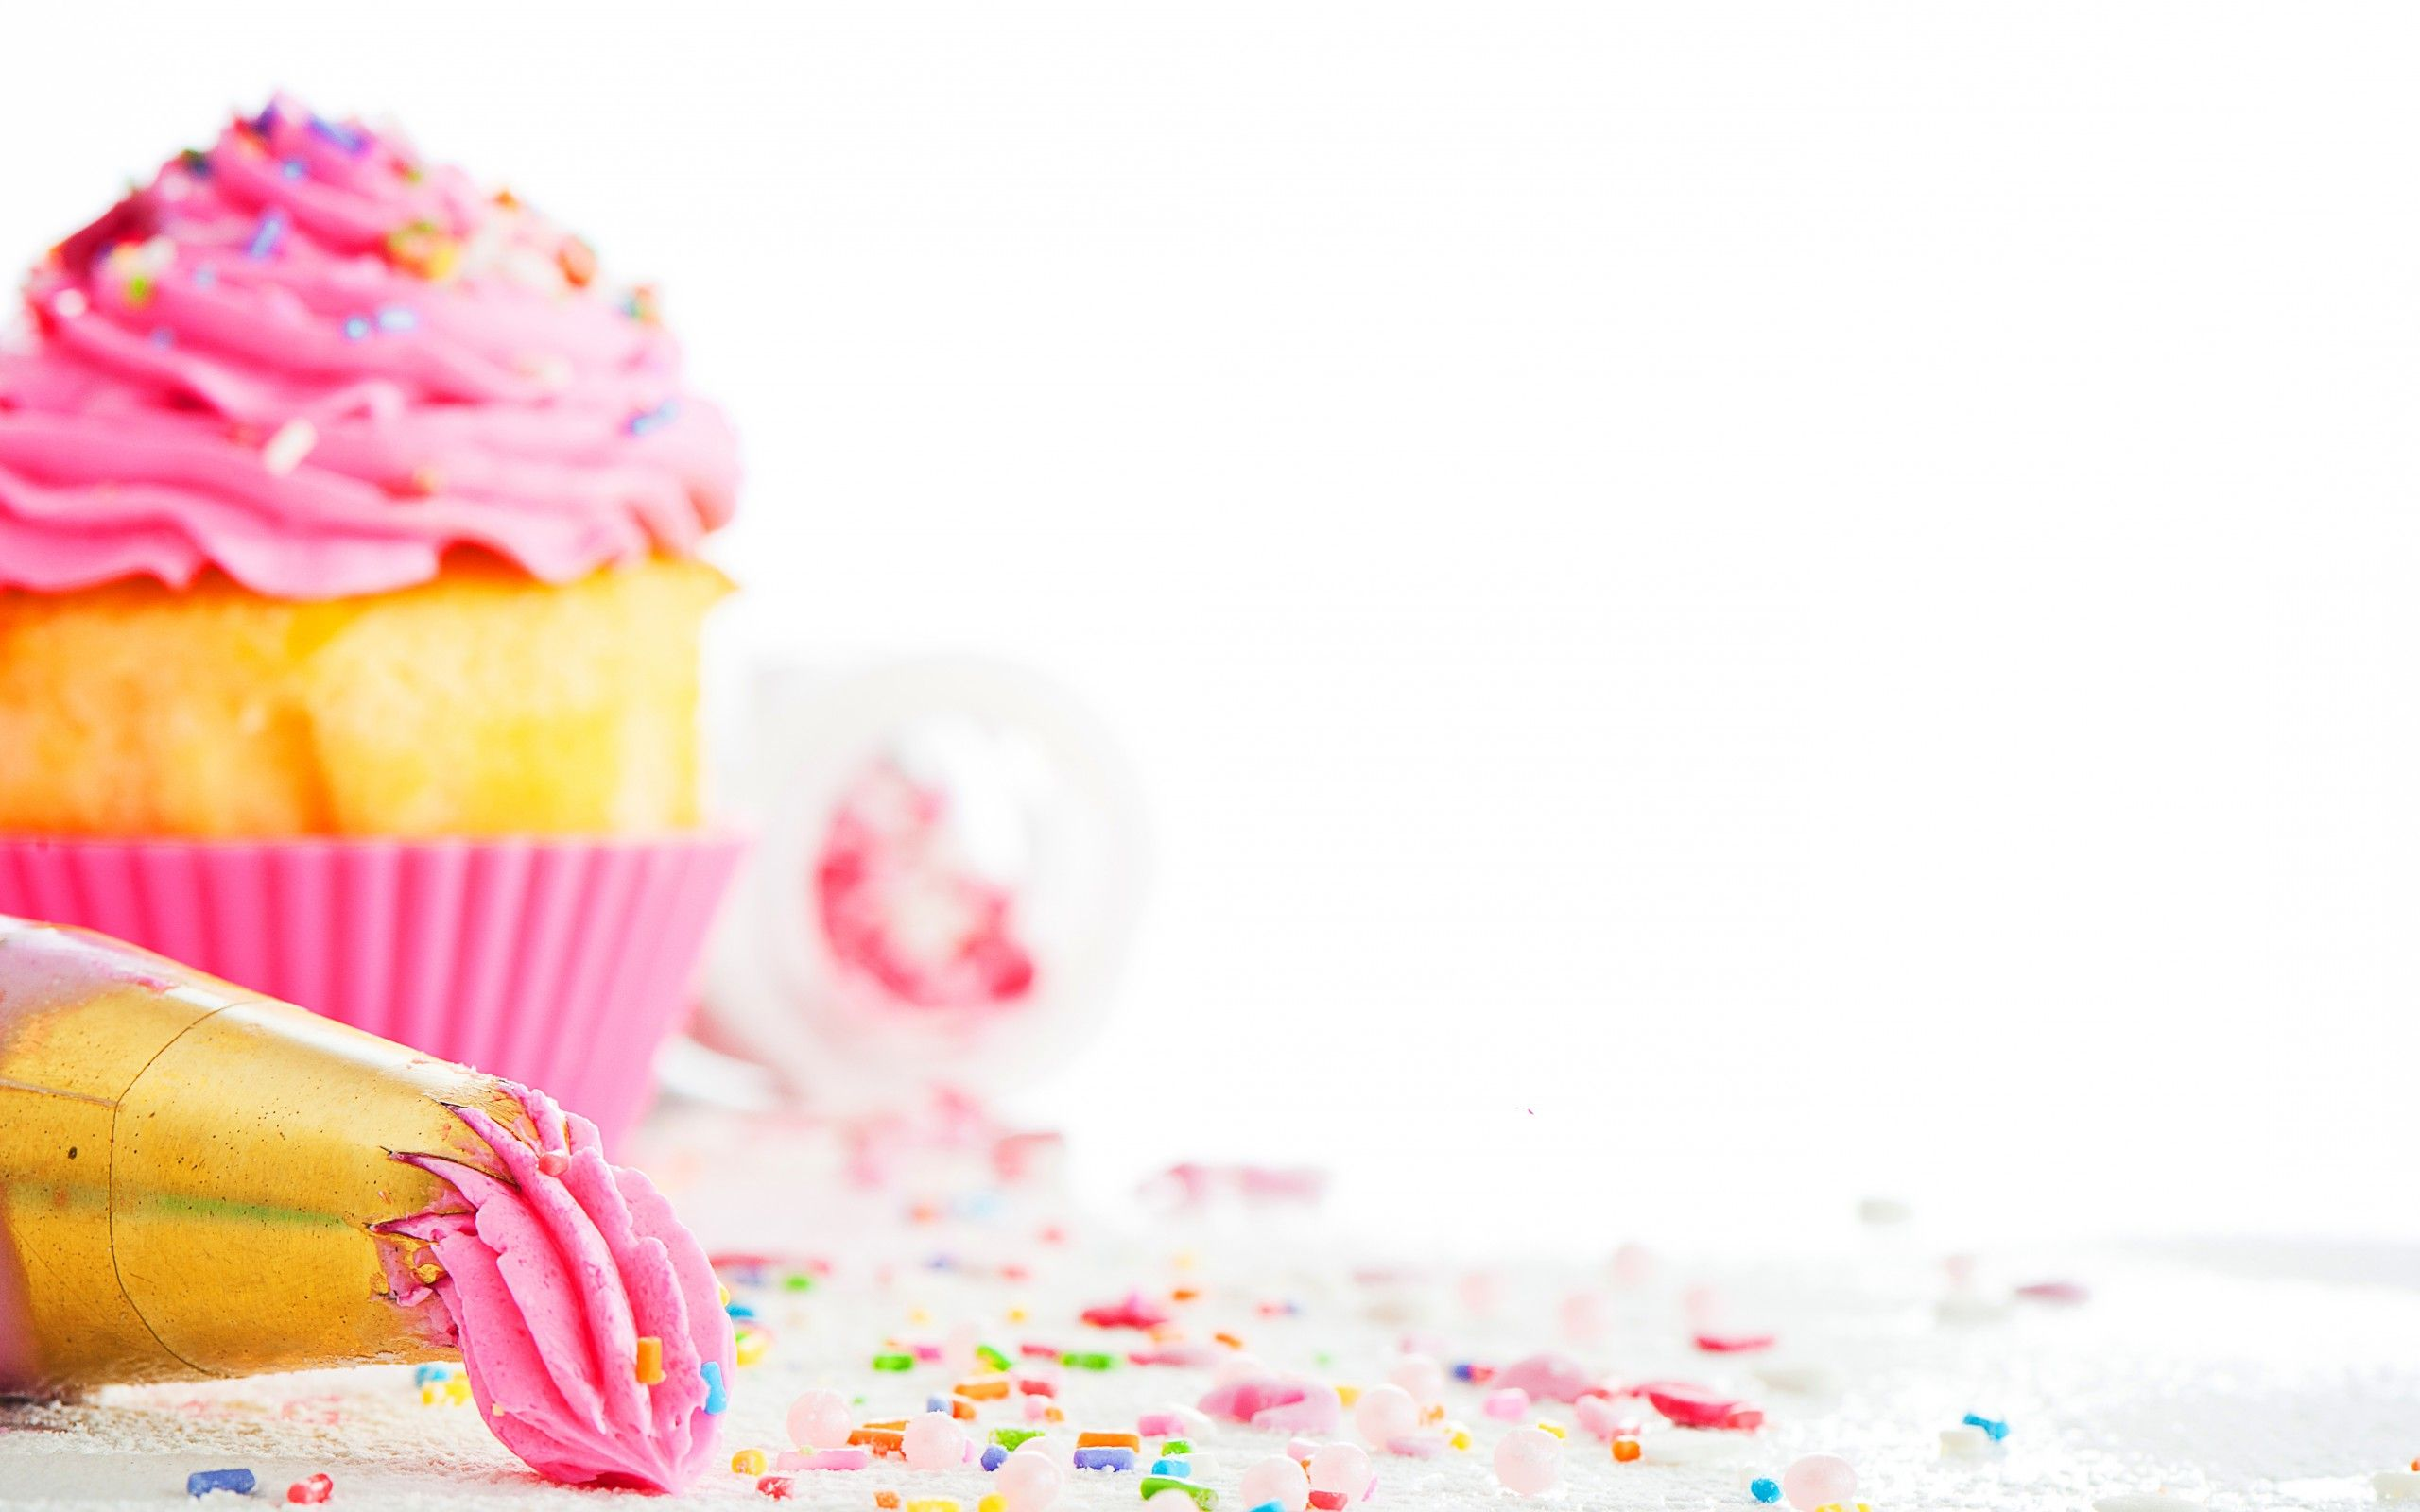 a picture of a cupcake